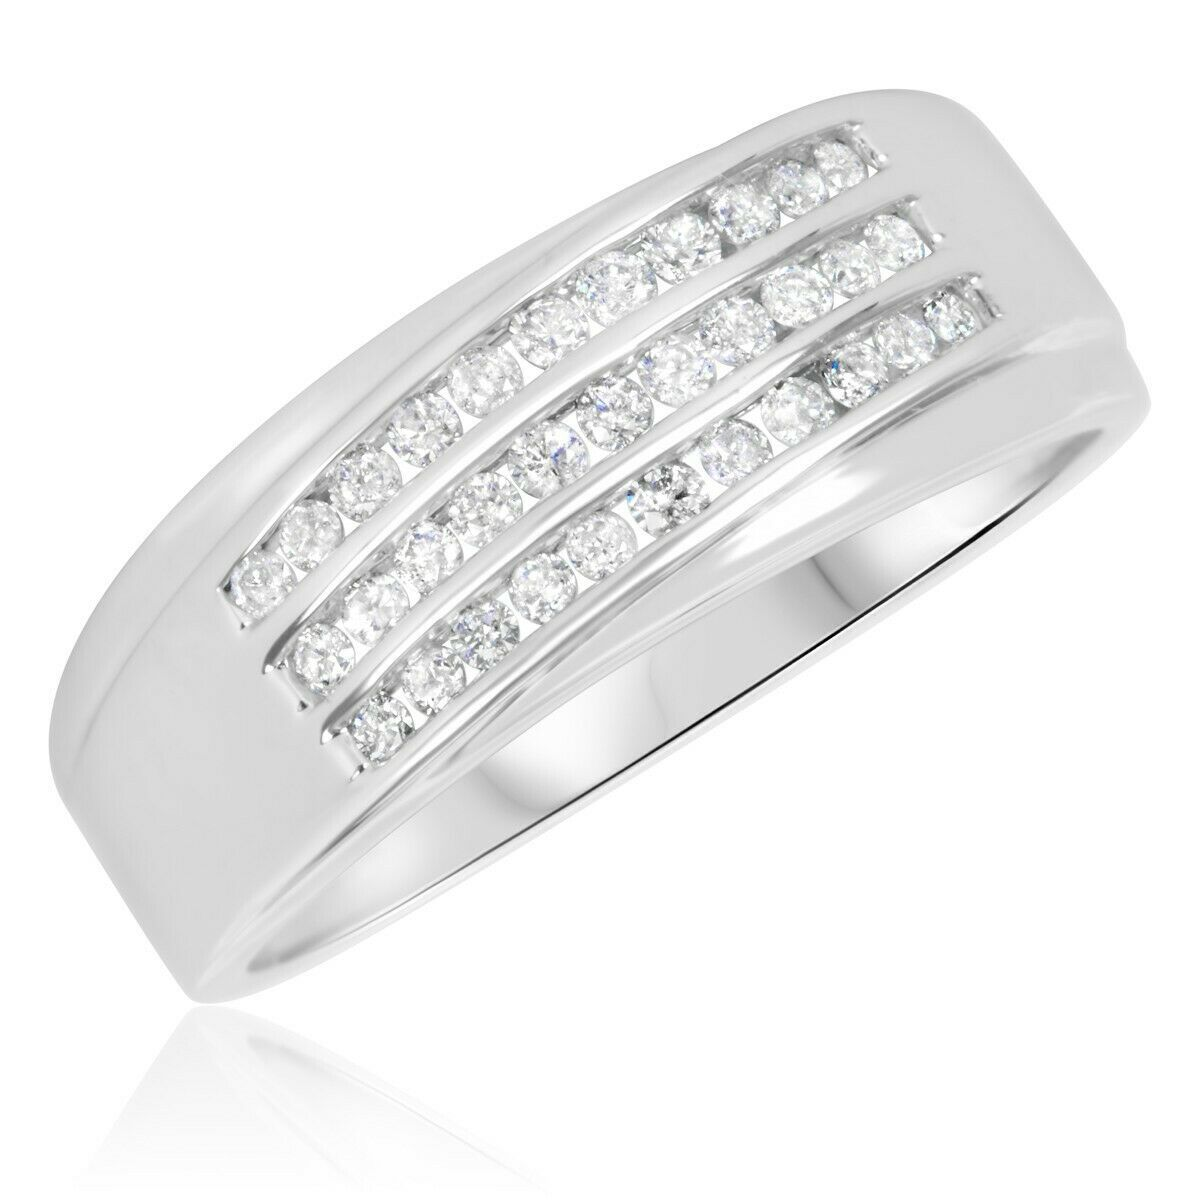 Mens Wedding Engagement Diamond Ring Band 14k White Gold Finish 925 Solid Silver - £69.04 GBP